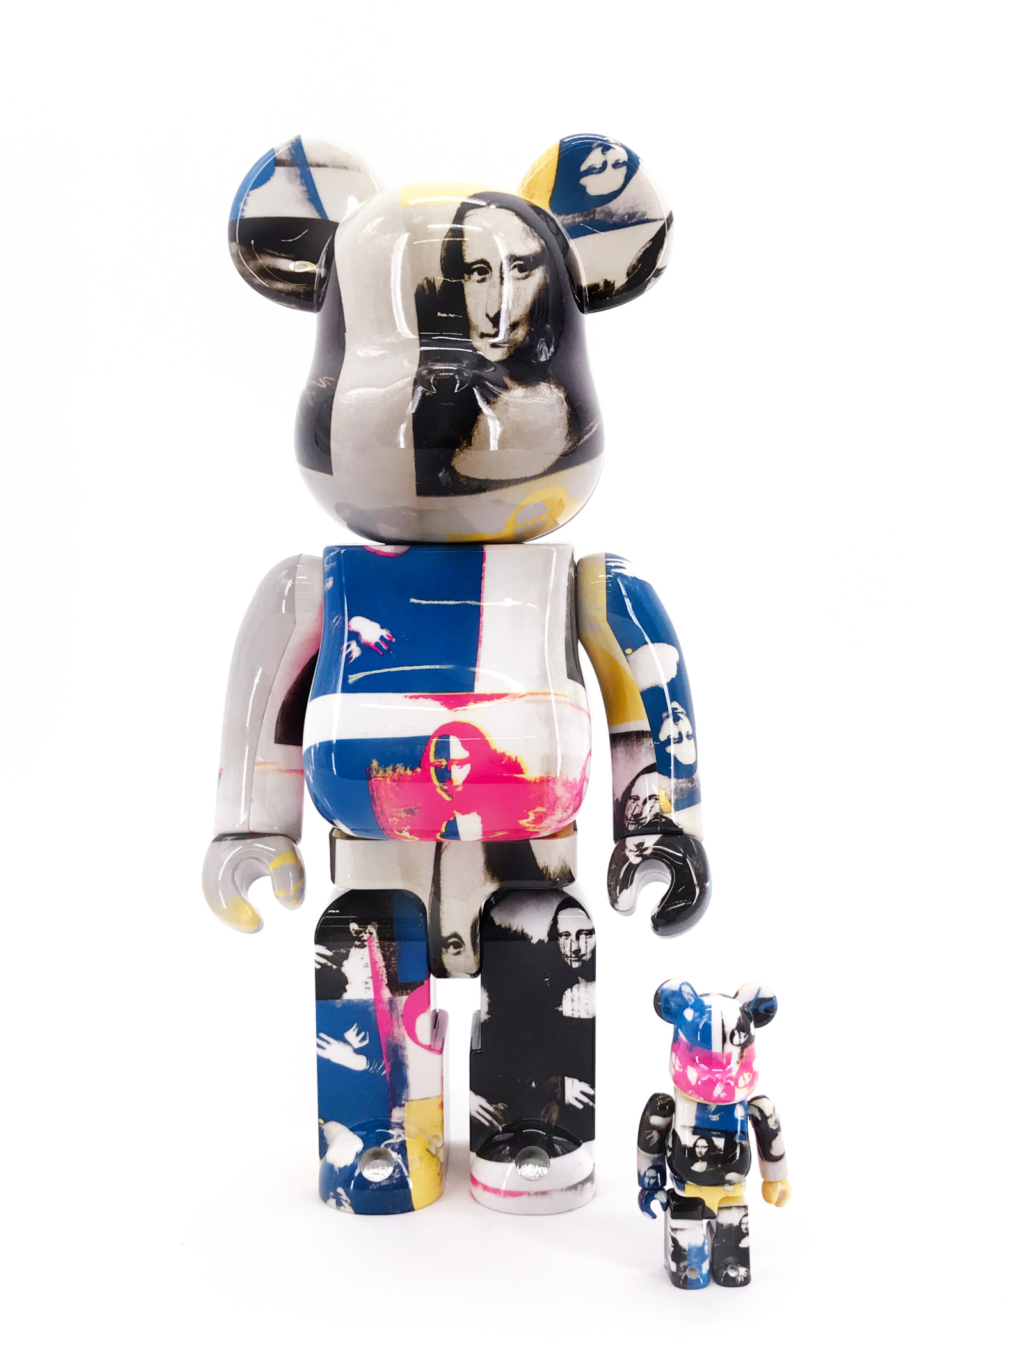 DesignerCon Exclusive Andy Warhol Mona Lisa Colored Bearbrick